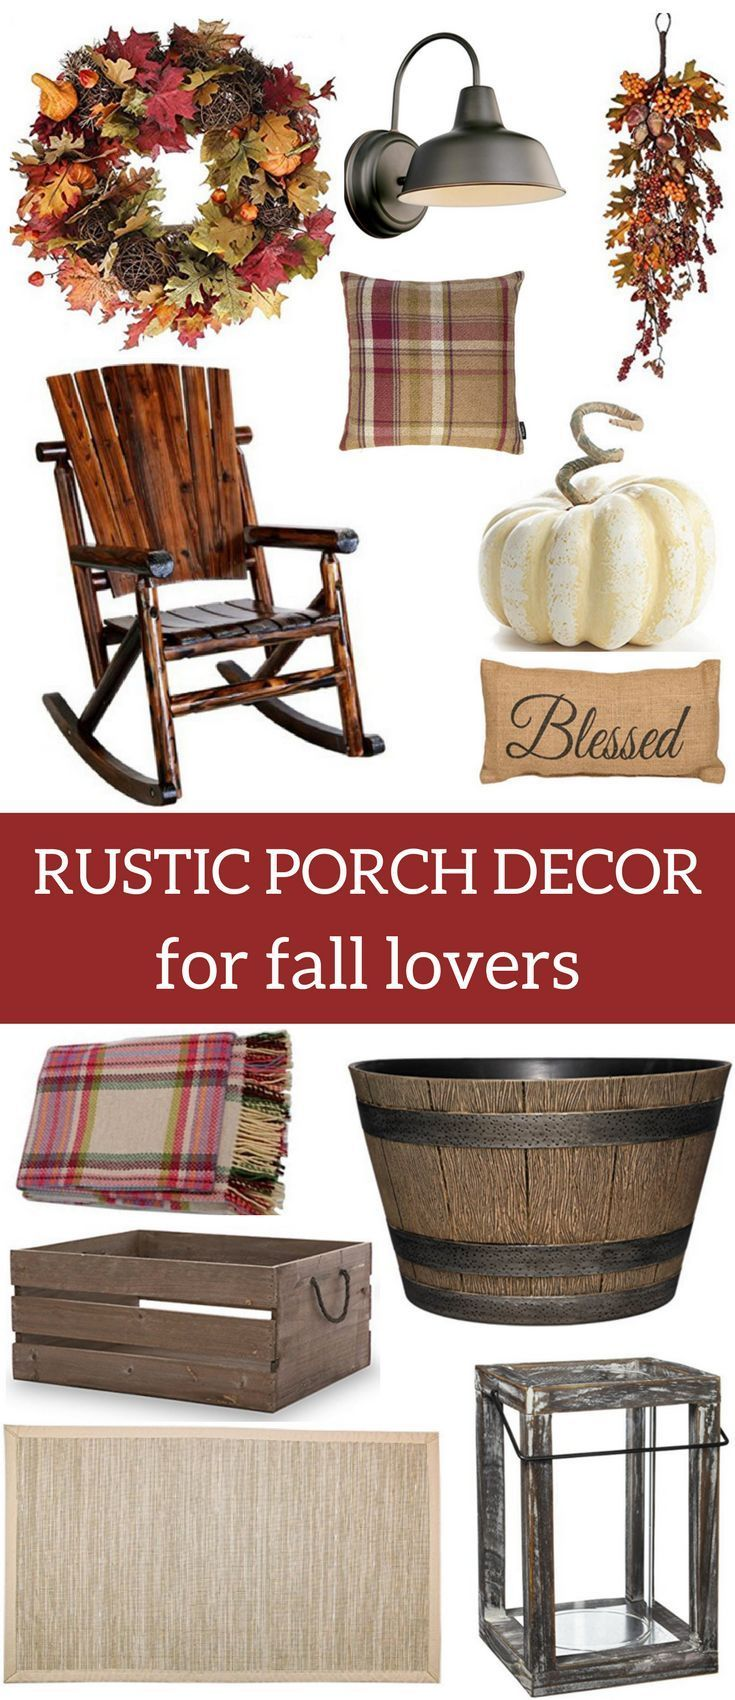 Rustic Porch Decor for Fall Lovers - Marly Dice